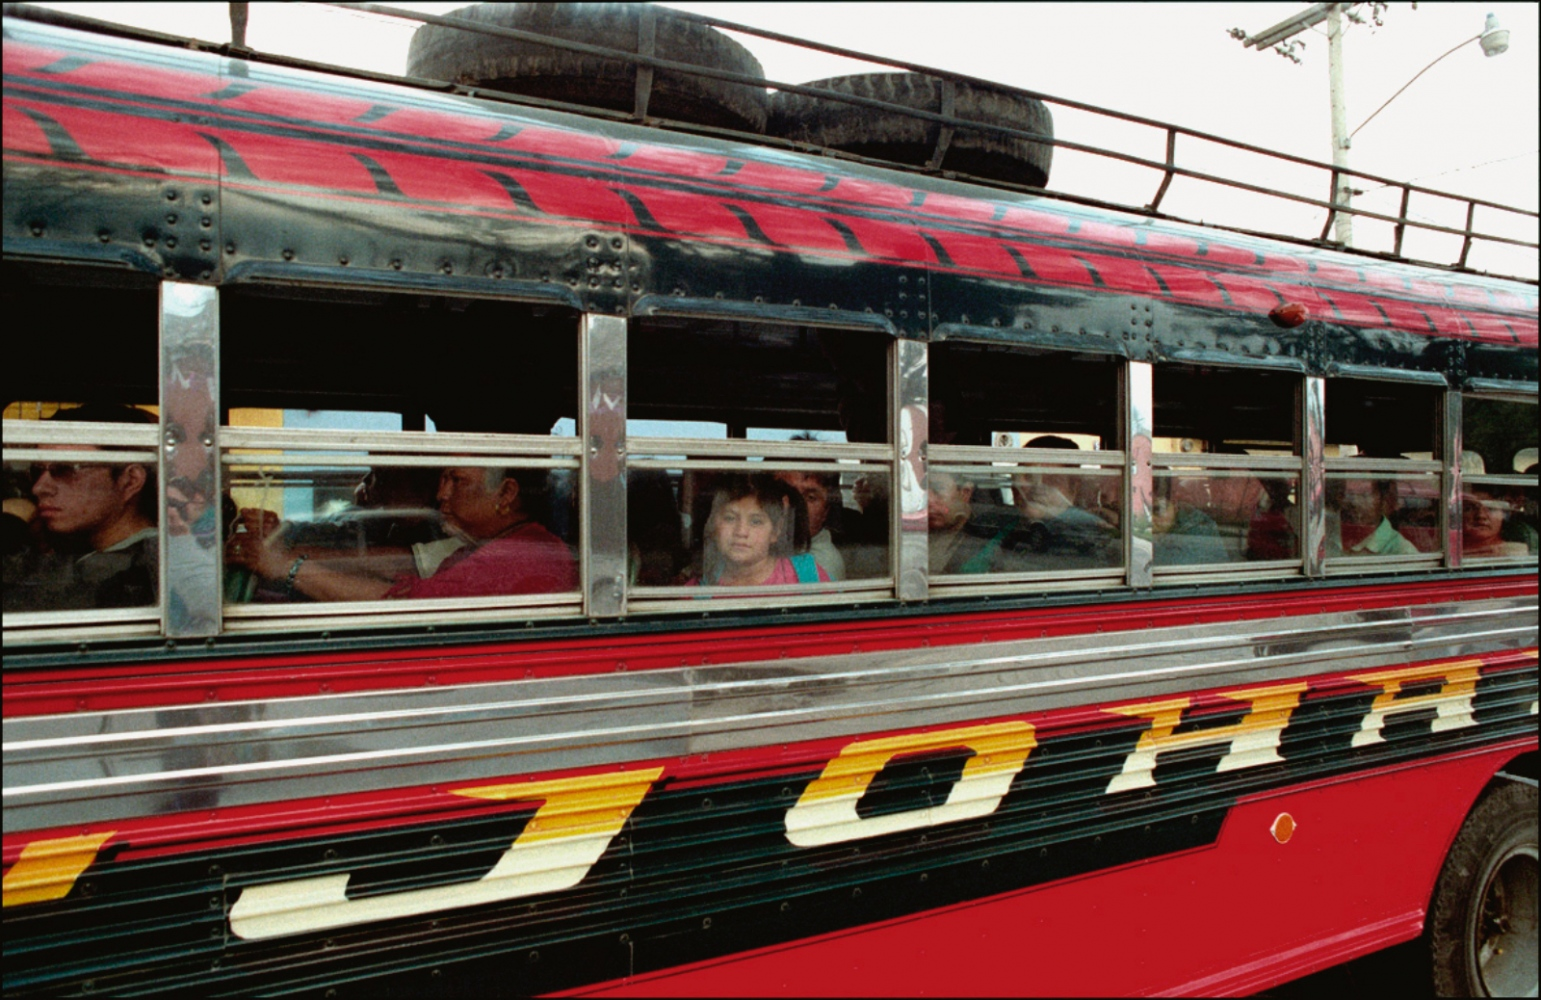 Child on Bus, Antigua, Guatemala, April 2006